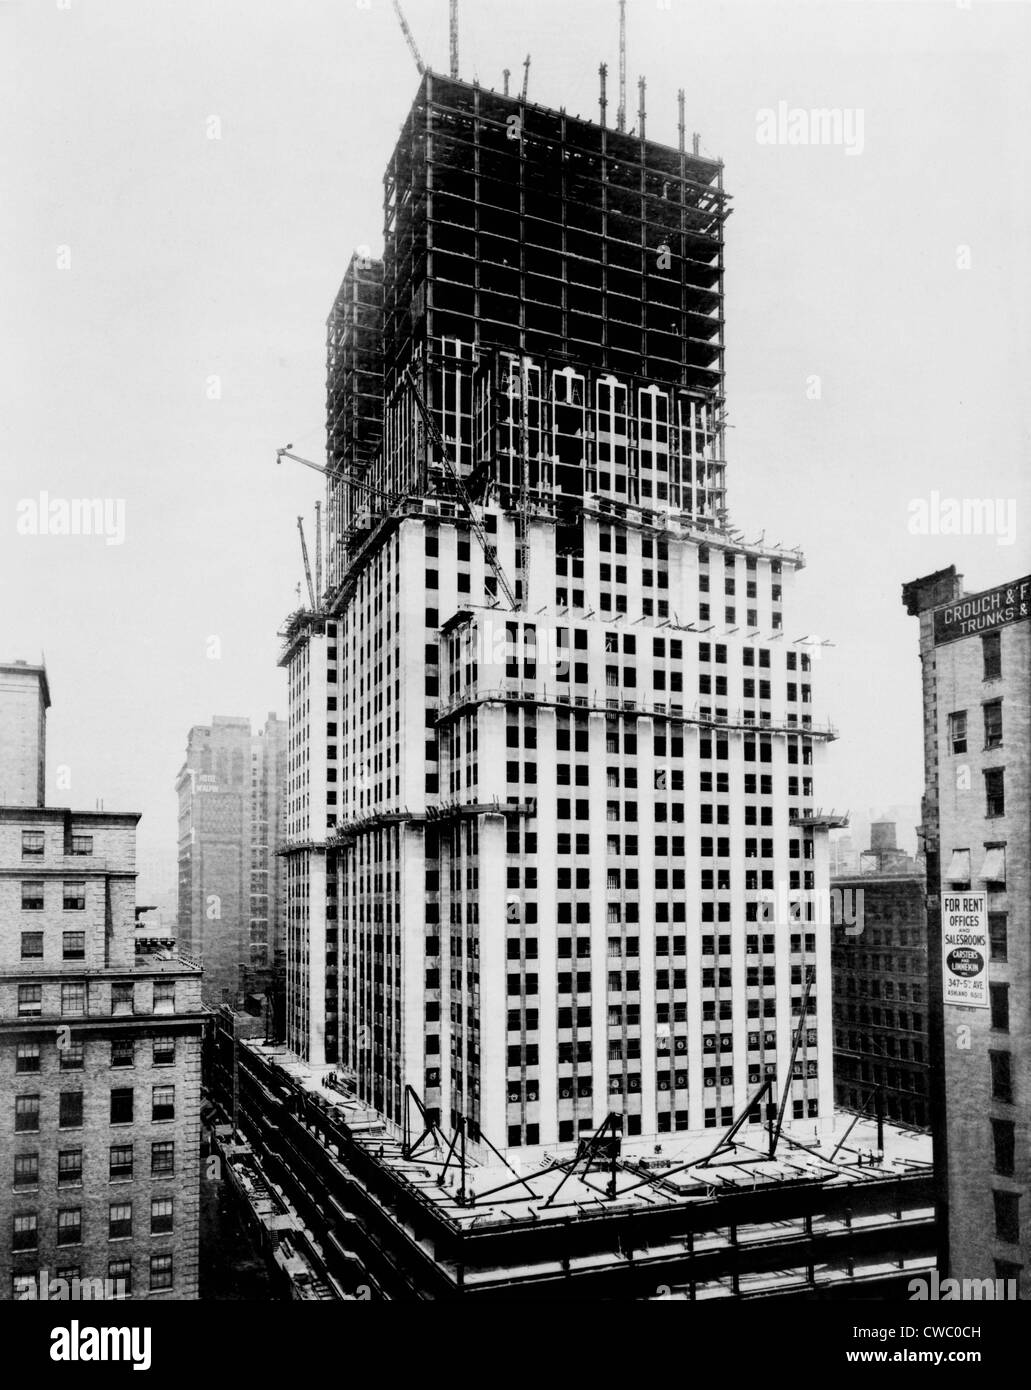 Empire State Building under construction in the early 1930s. The steel frame is built up to the 40th floor. - Stock Image